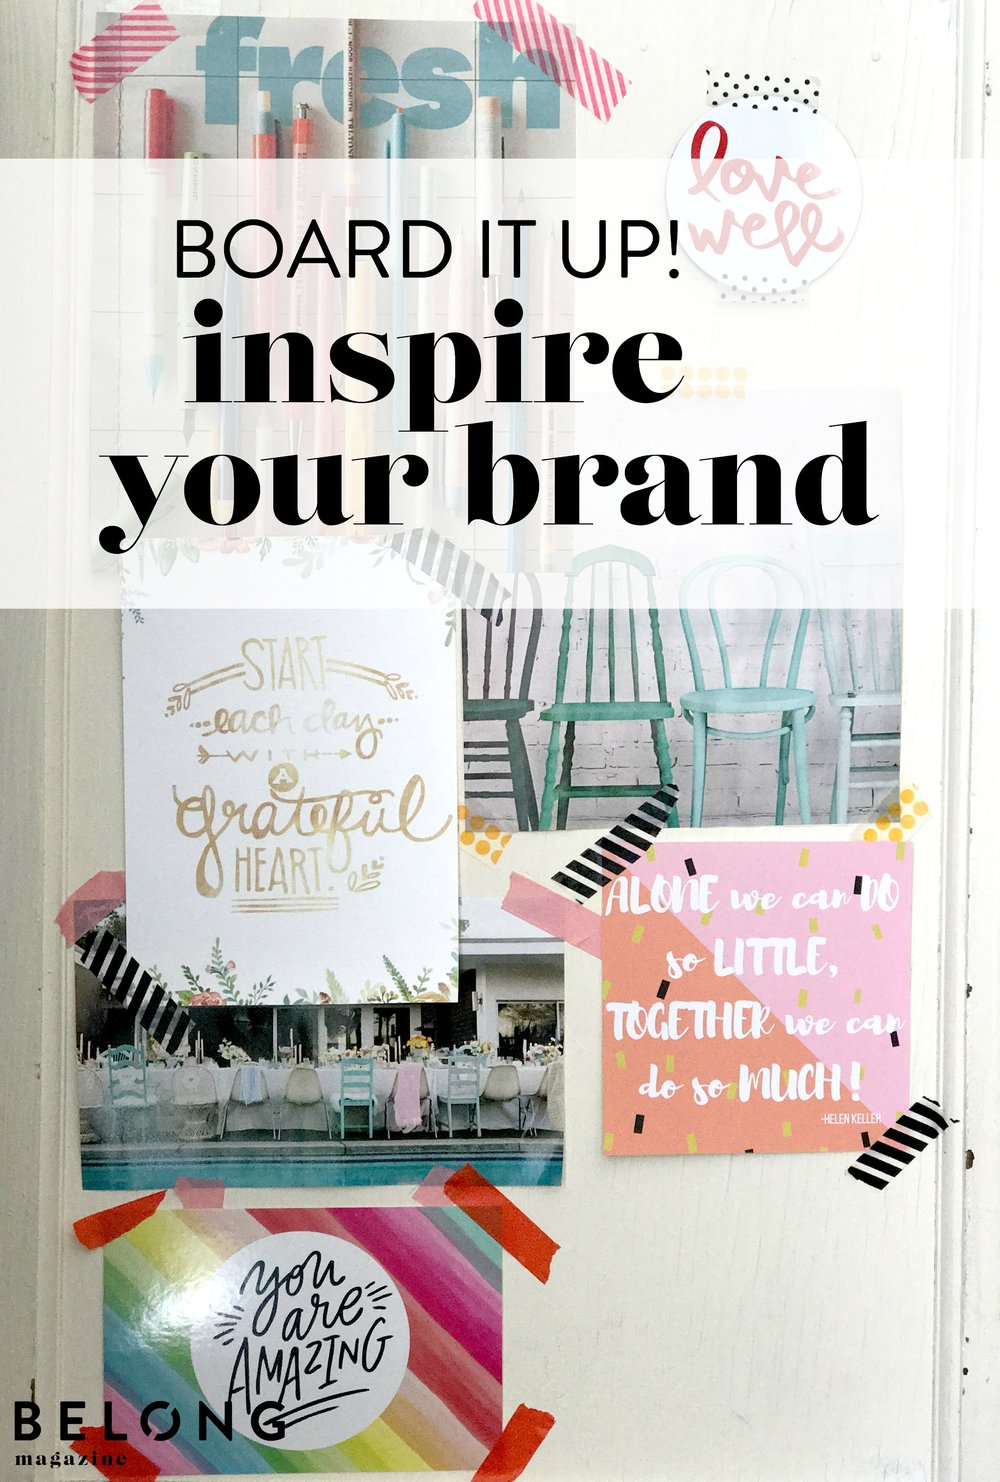 board it up! how an inspiration board can inspire your brand - perfect for female entrepreneurs, creatives, women in business on the Belong Magazine blog